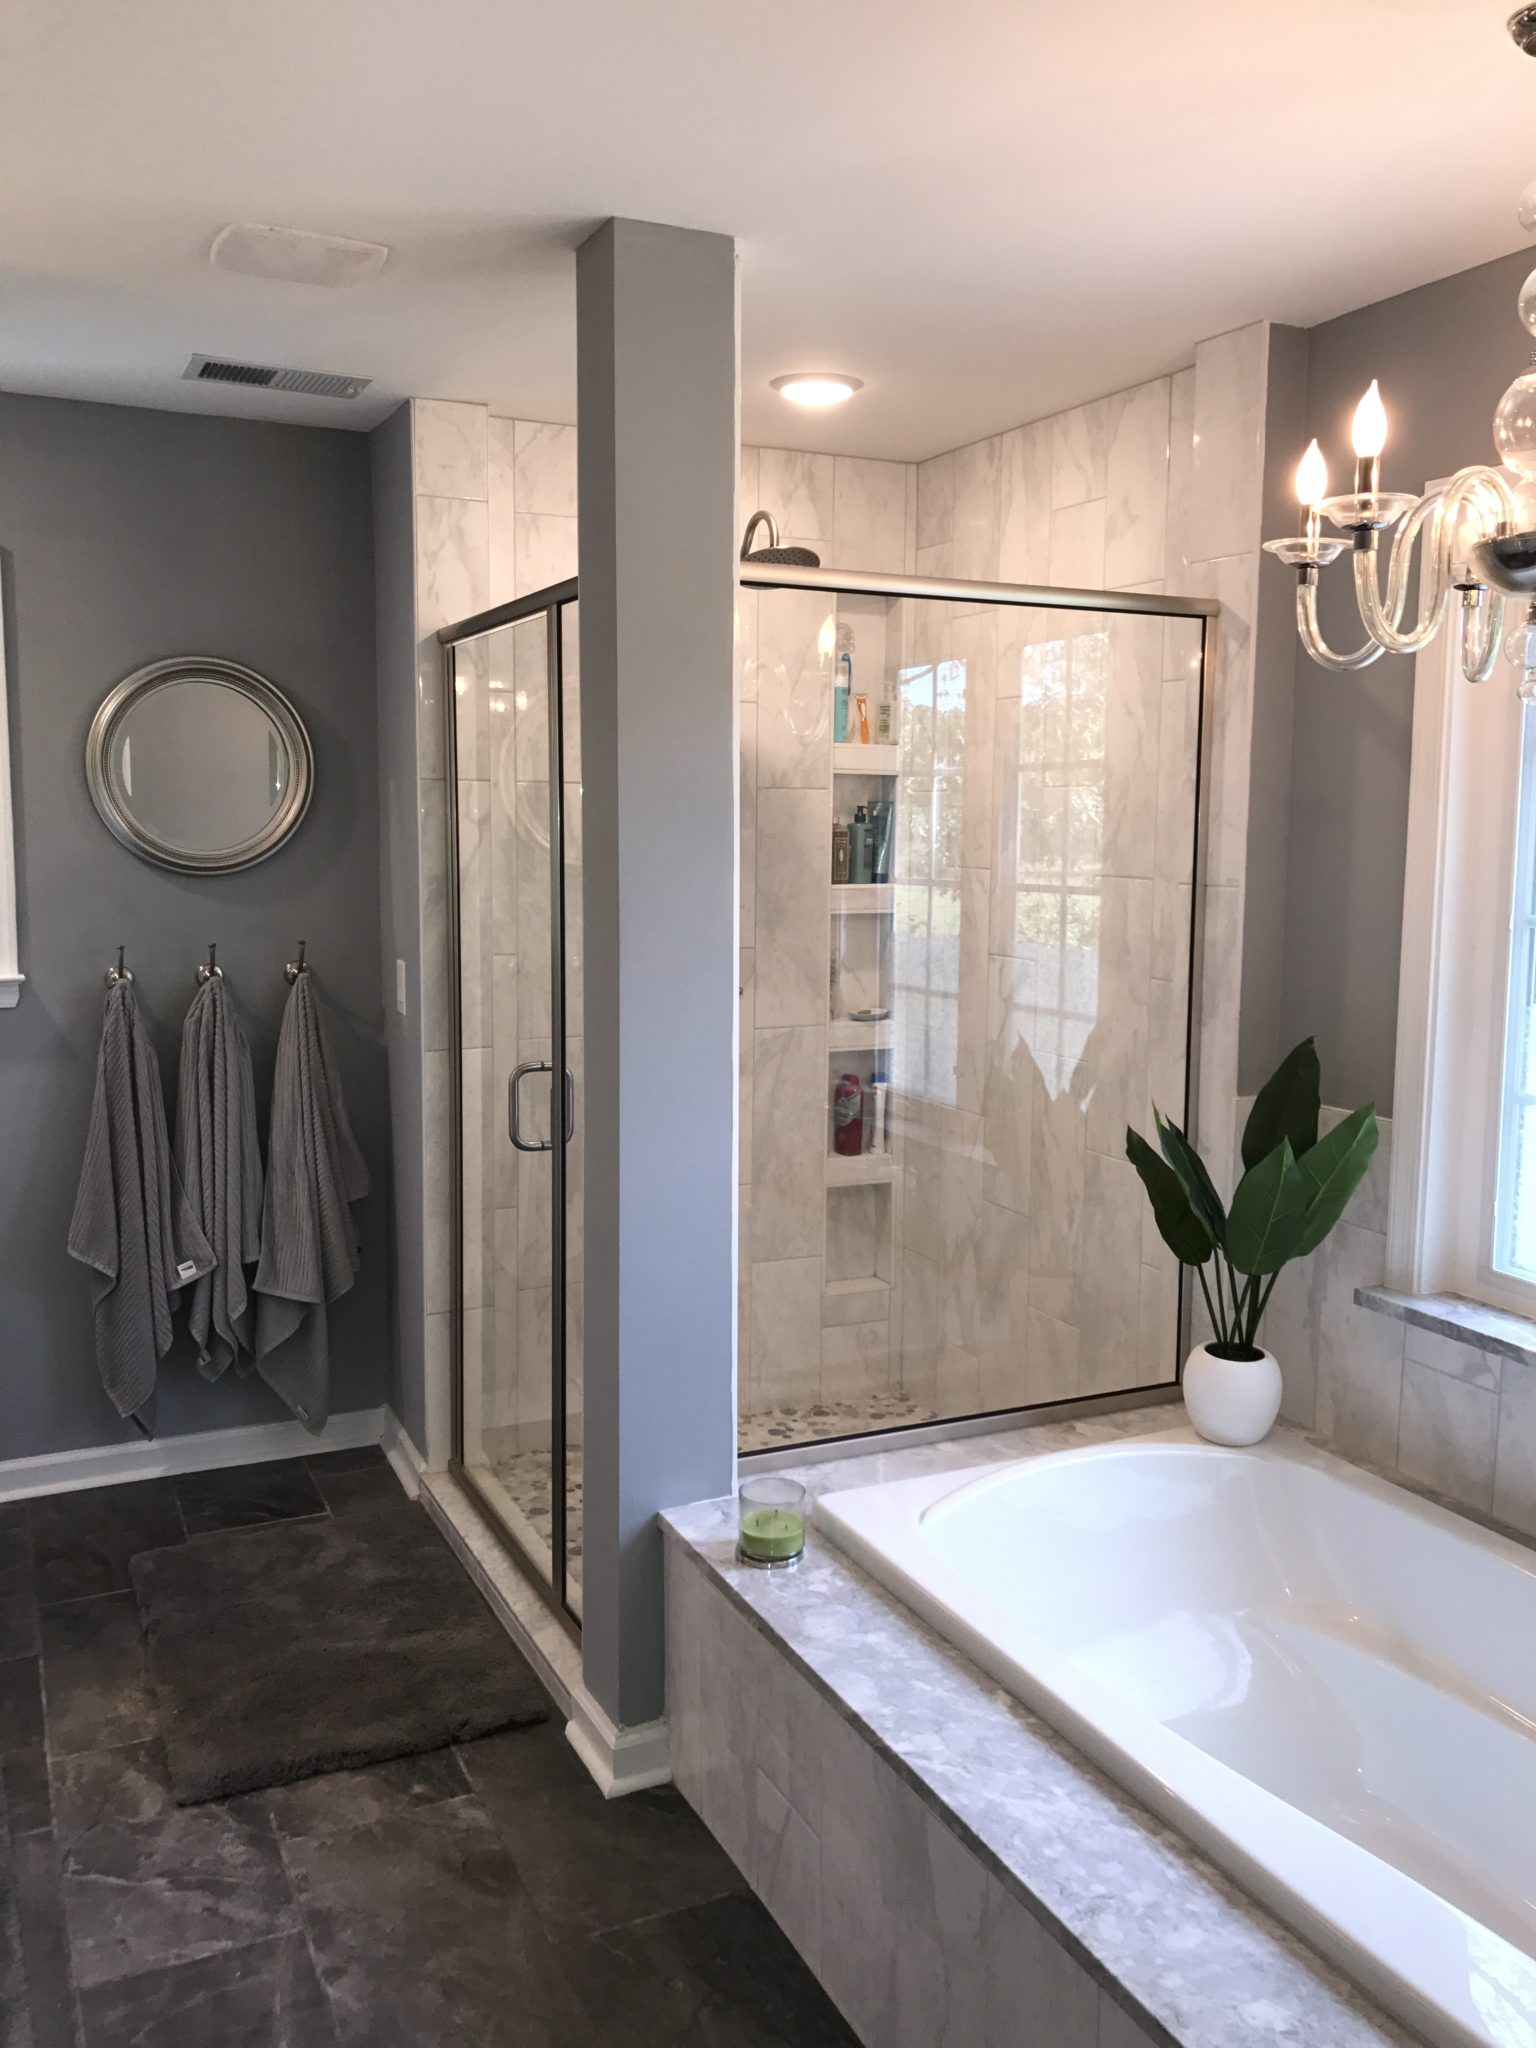 Bathroom Remodeling, Home Additions, Doug Lewis Remodeling, Richmond, on basement additions, room additions, glass additions, small masterbath additions, garage additions, building additions, outdoor additions, fireplace additions, master bedroom additions, loft additions,